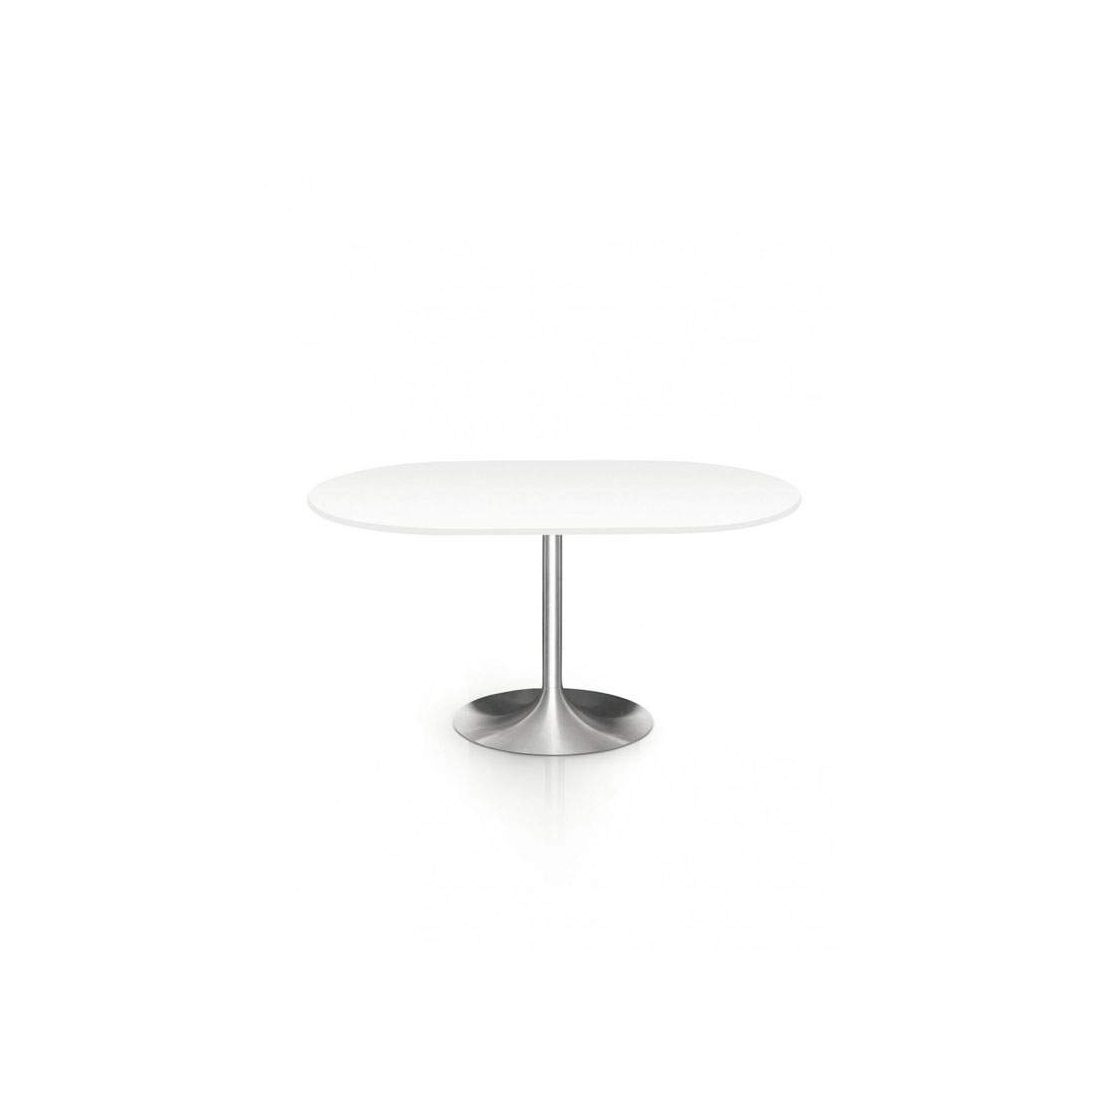 Table ronde salle a manger joe myyour zendart design - Table salle a manger ronde ...